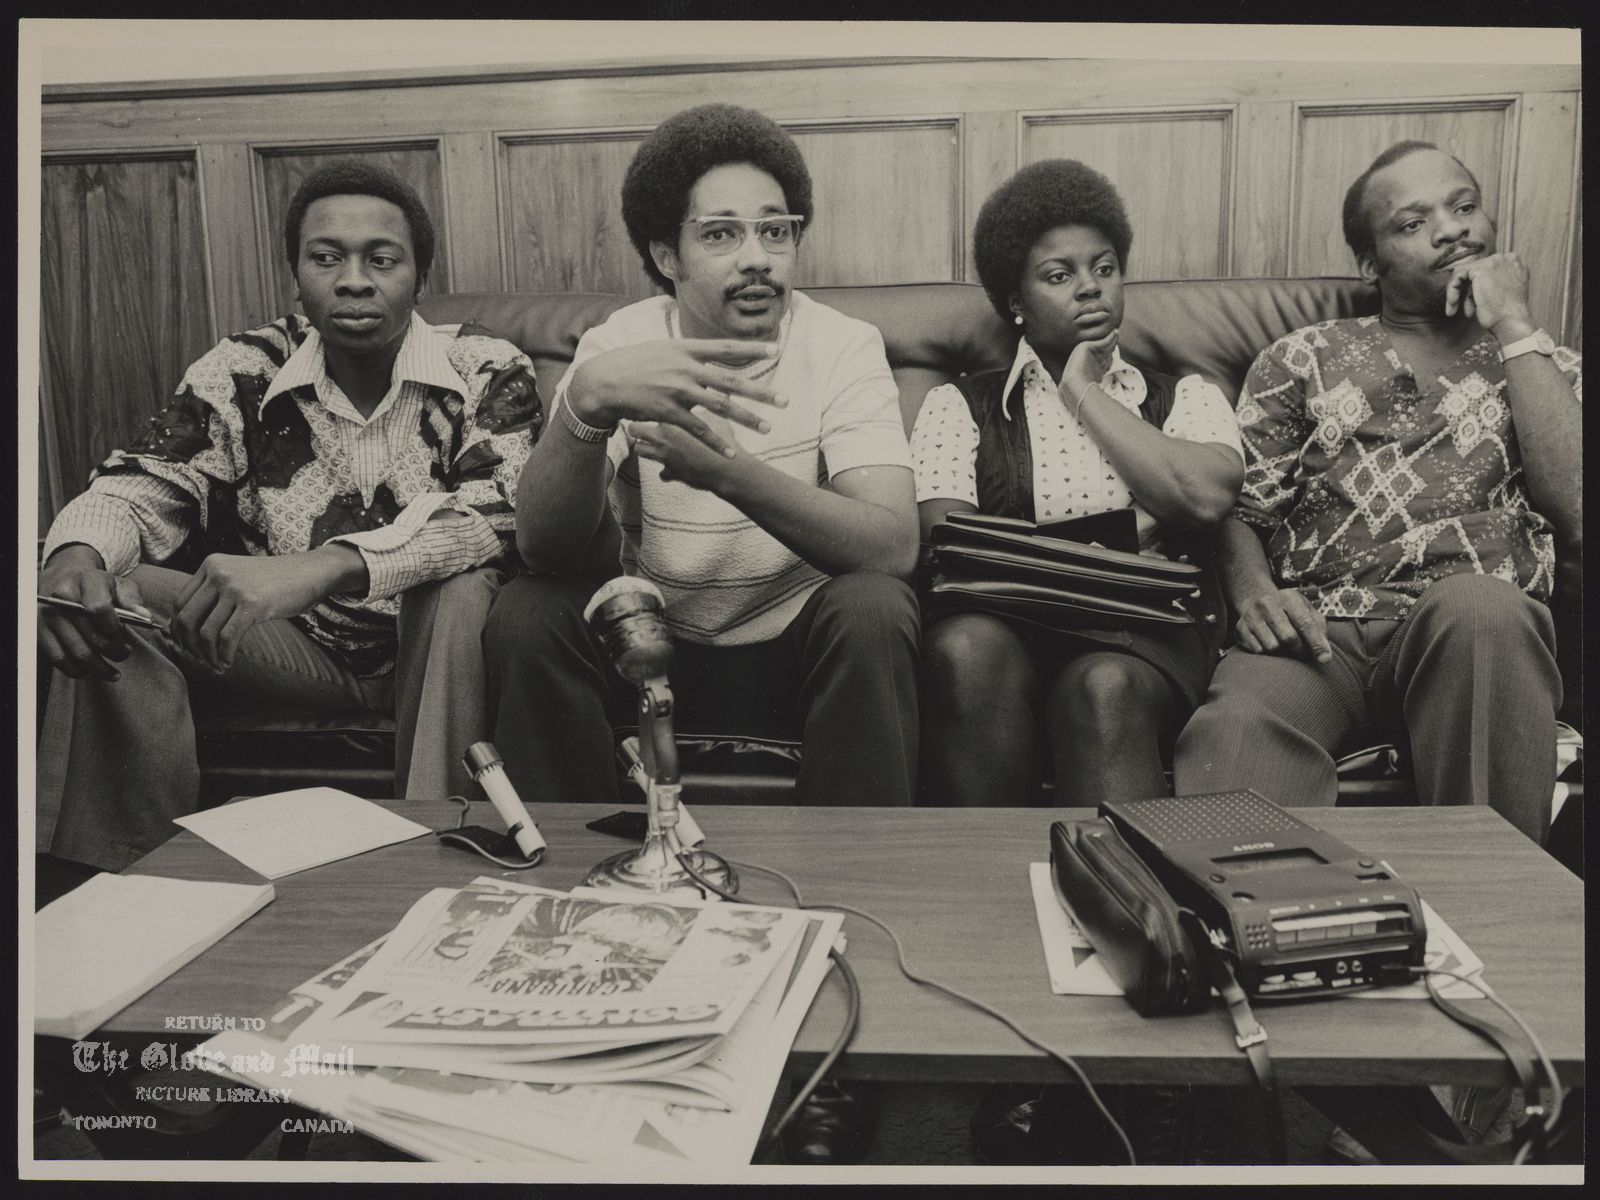 Horace CAMPBELL Toronto. Director of Black Education Project (From left to right: Horace Campbell, Harold Hoyte, Editor of Contrast, Joyce Squire Co-ordinator of Black Education Project and Dudley Laws, President of Universal Negro Improvement Assoc. at Black Peoples Conference.)